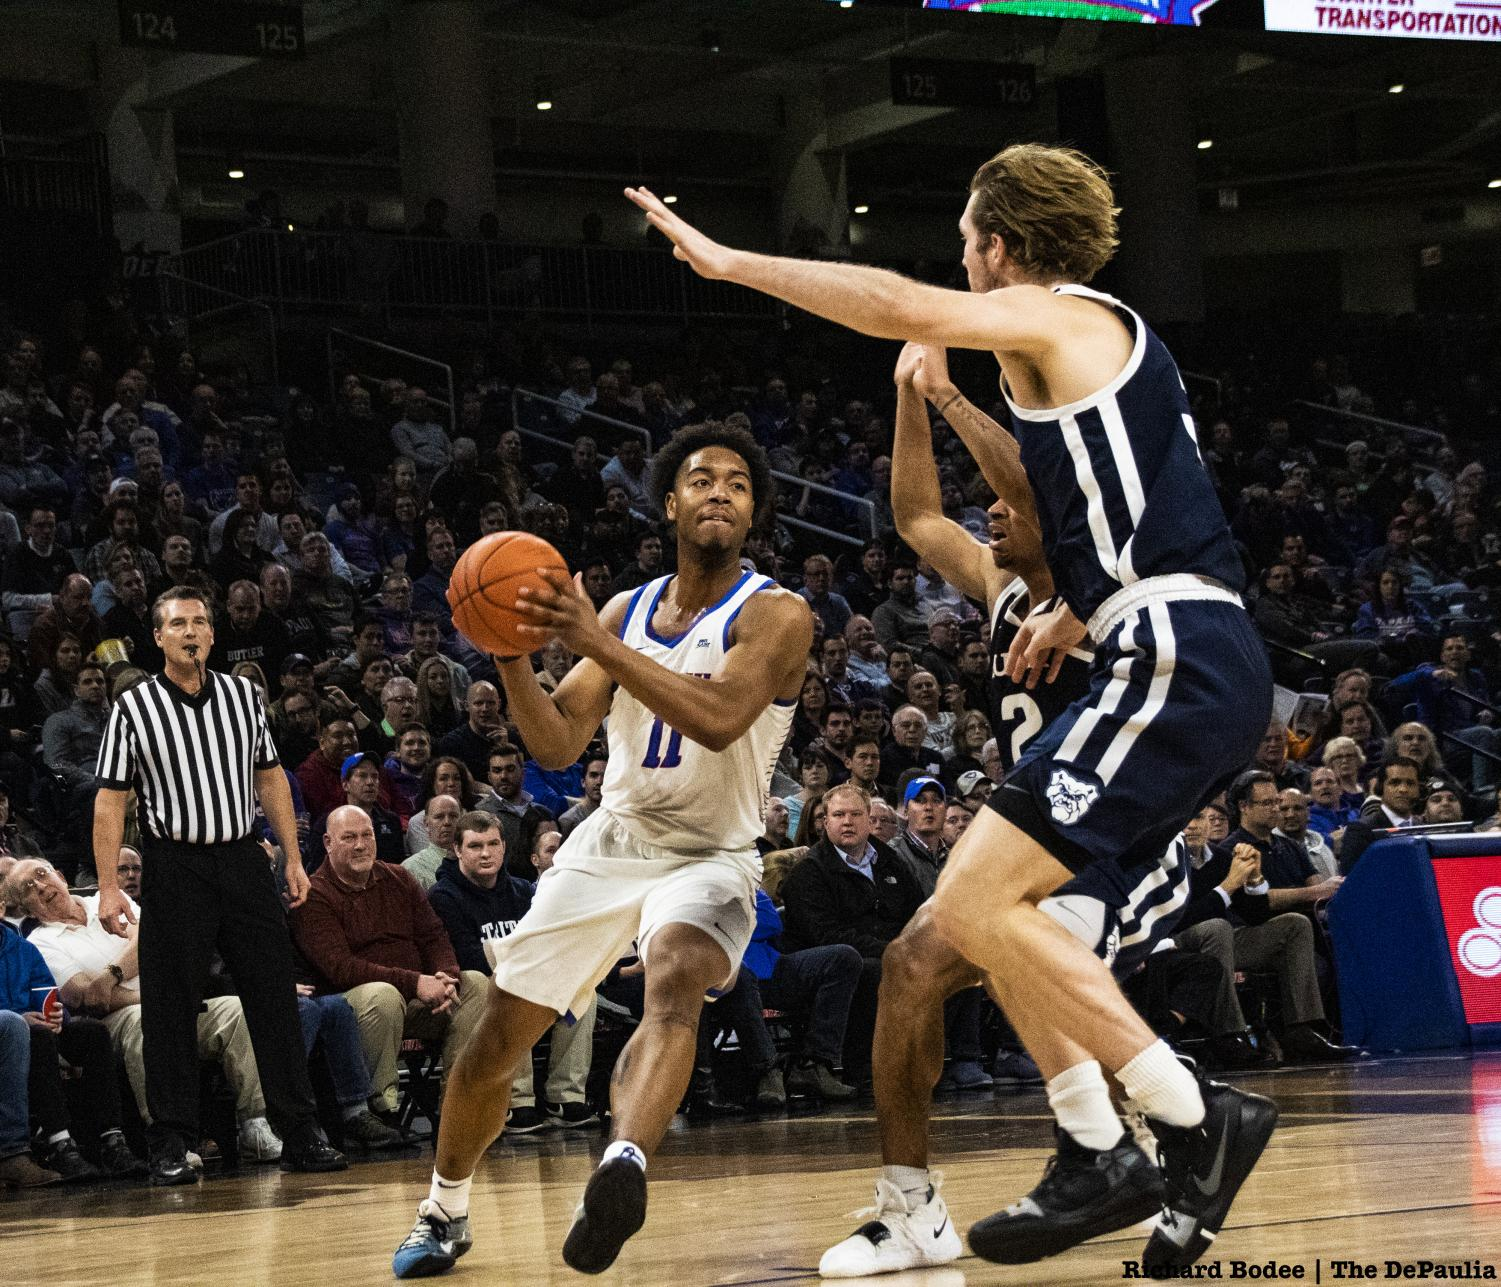 DePaul senior guard Eli Cain drives to the basket against Butler defenders Joey Brunk and Aaron Thompson. Cain finished with eight points and four assists.